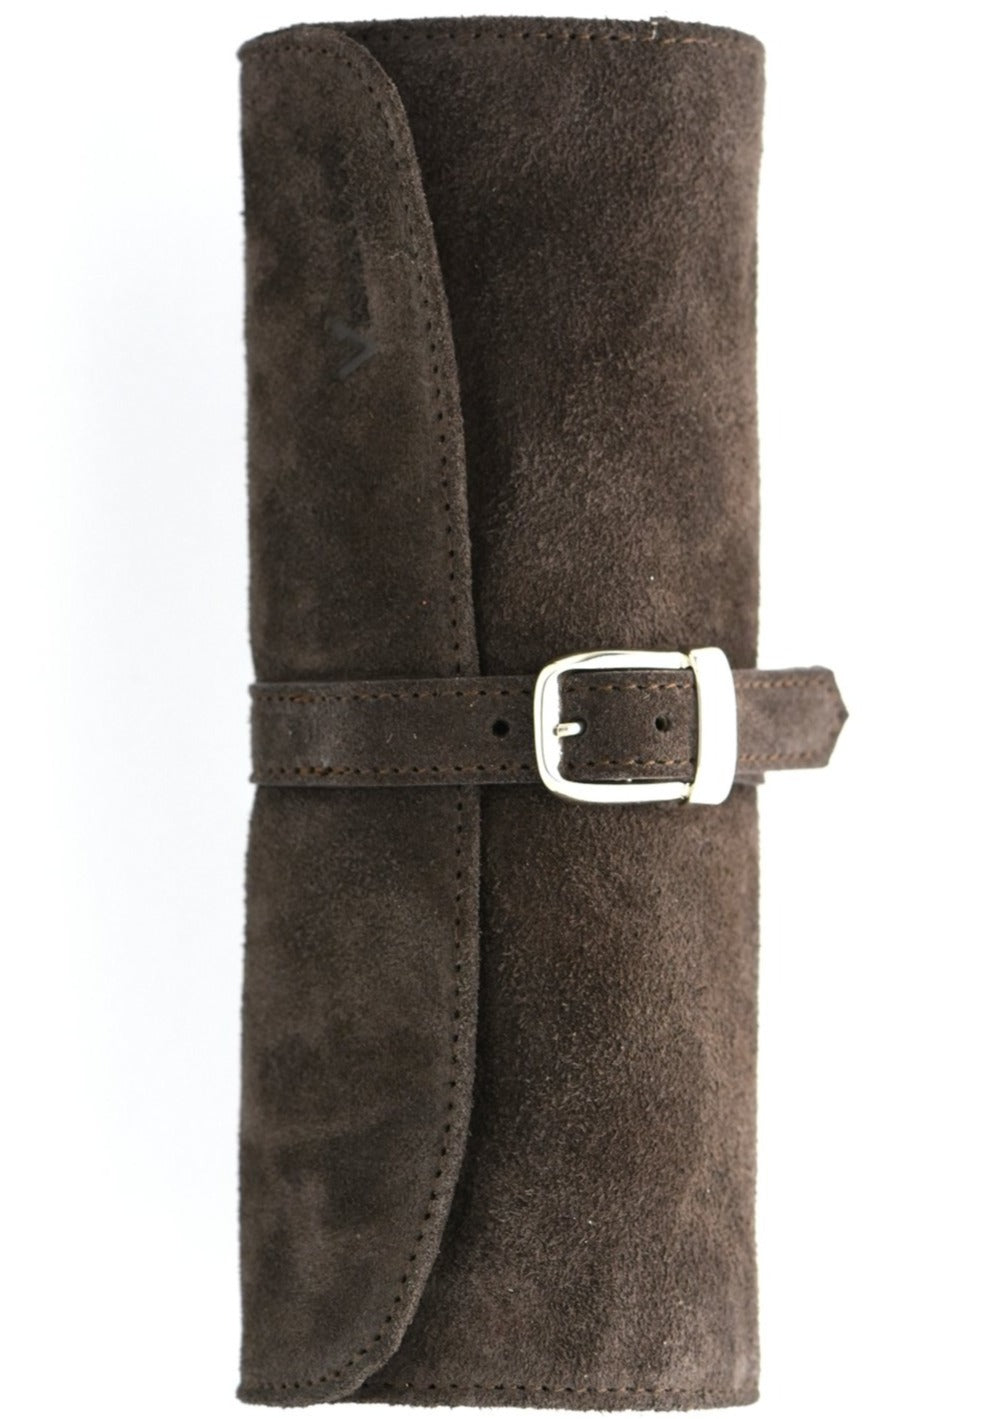 Suede Leather Watch Travel Tube in Seal Brown